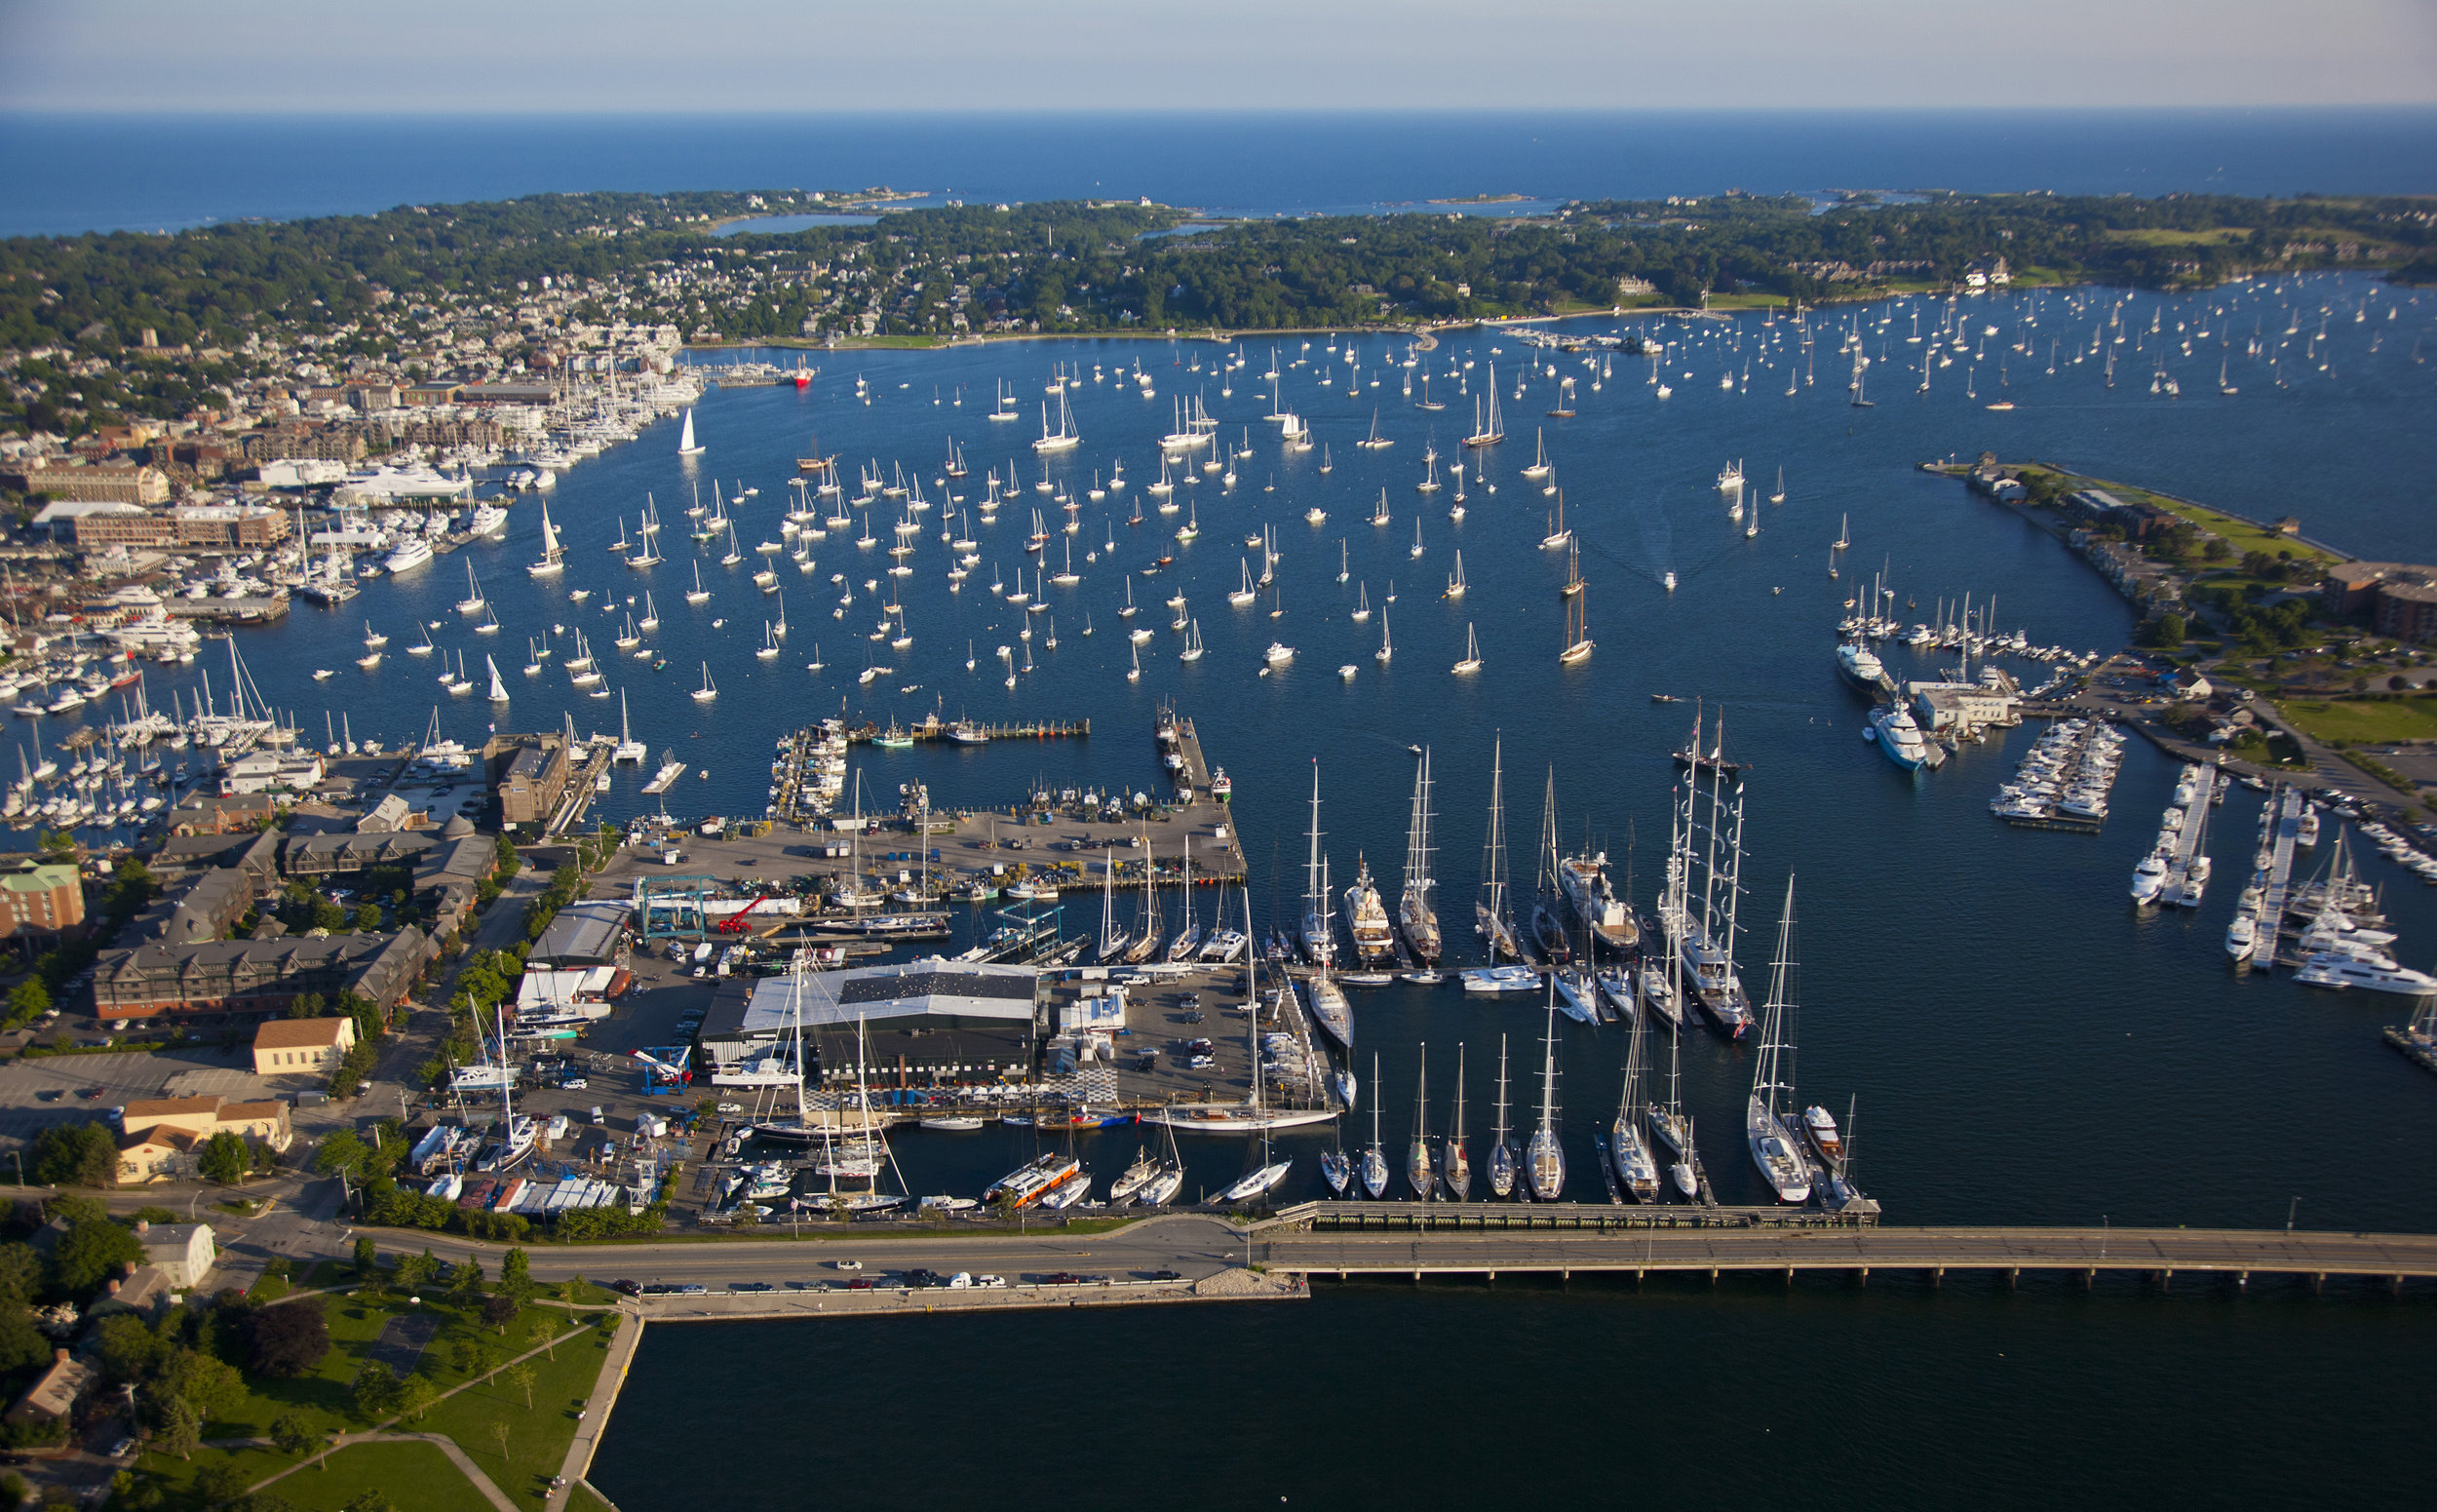 Newport Shipyard on the Newport waterfront. Photo: © Billy Black